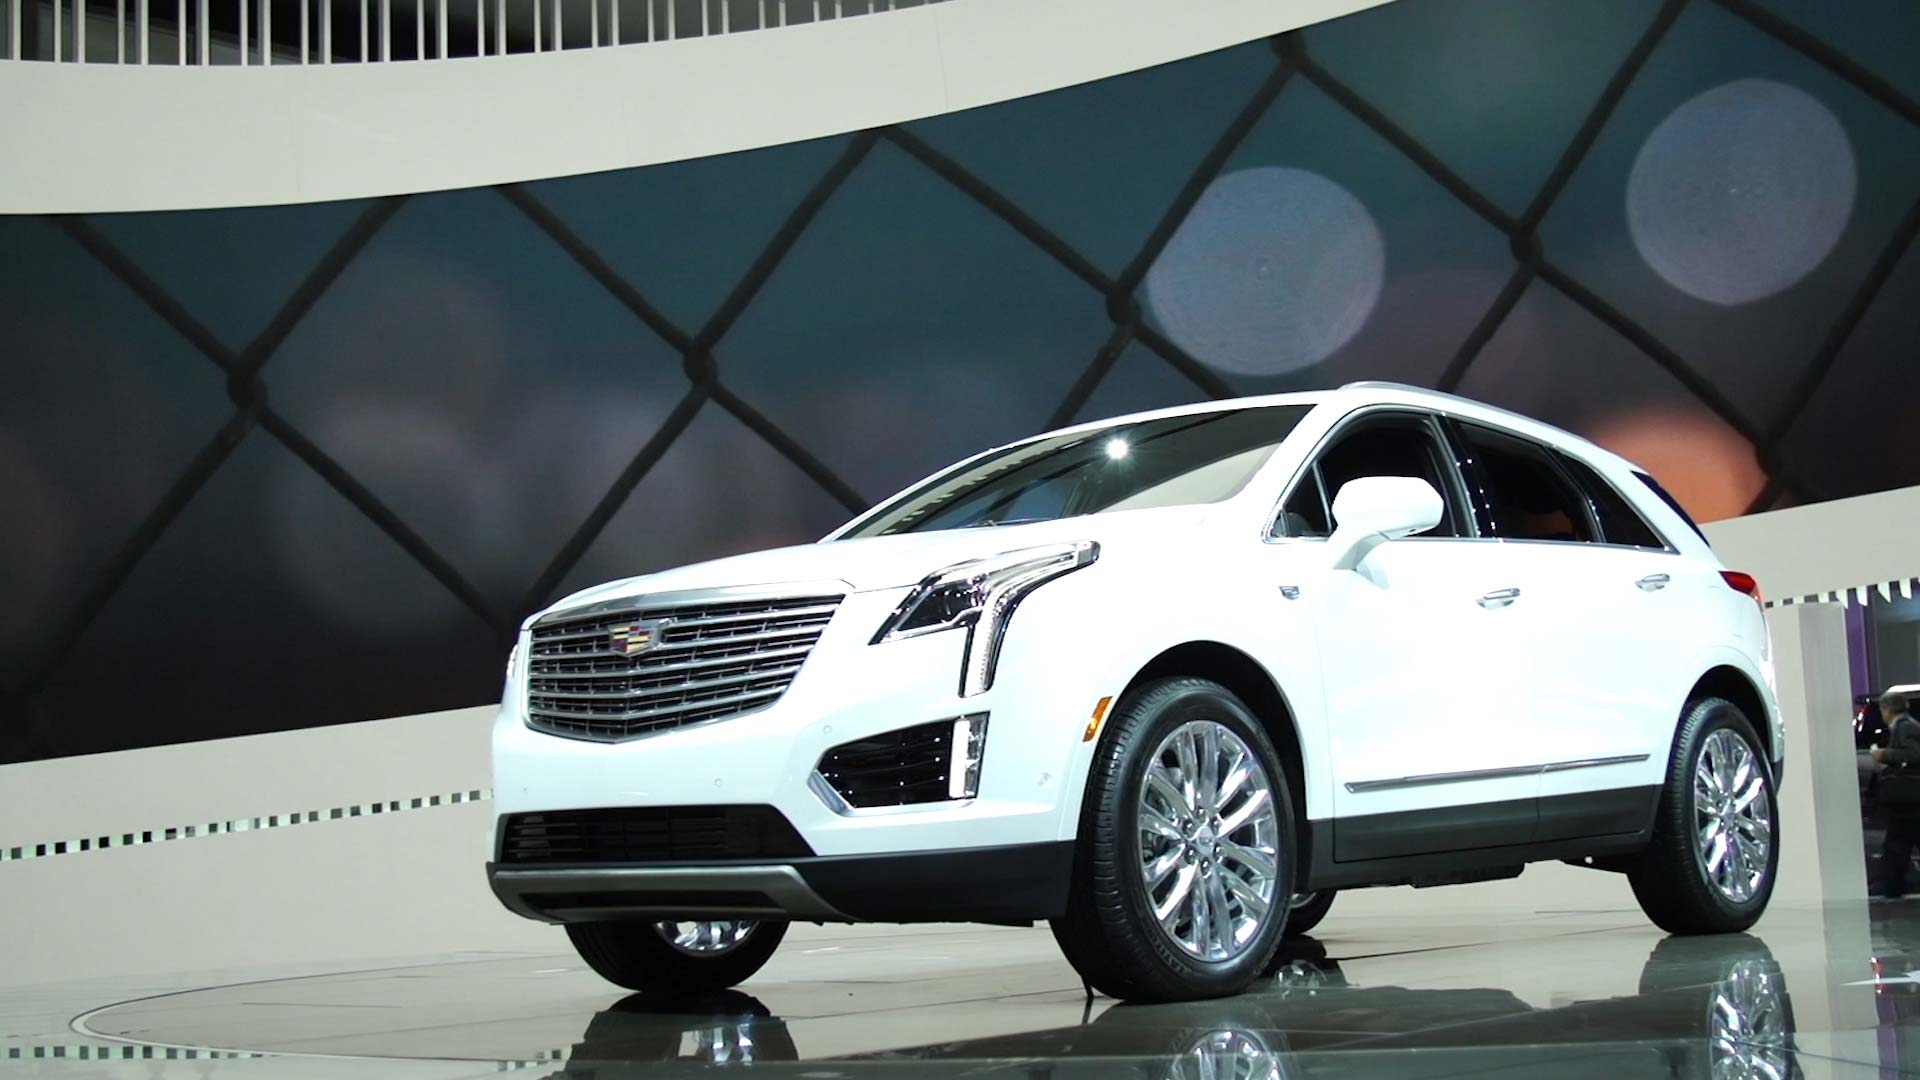 2020 Cadillac XT5 Review, Interior, Price, Specs >> Cadillac Xt5 Loses Weight Adds Luxury